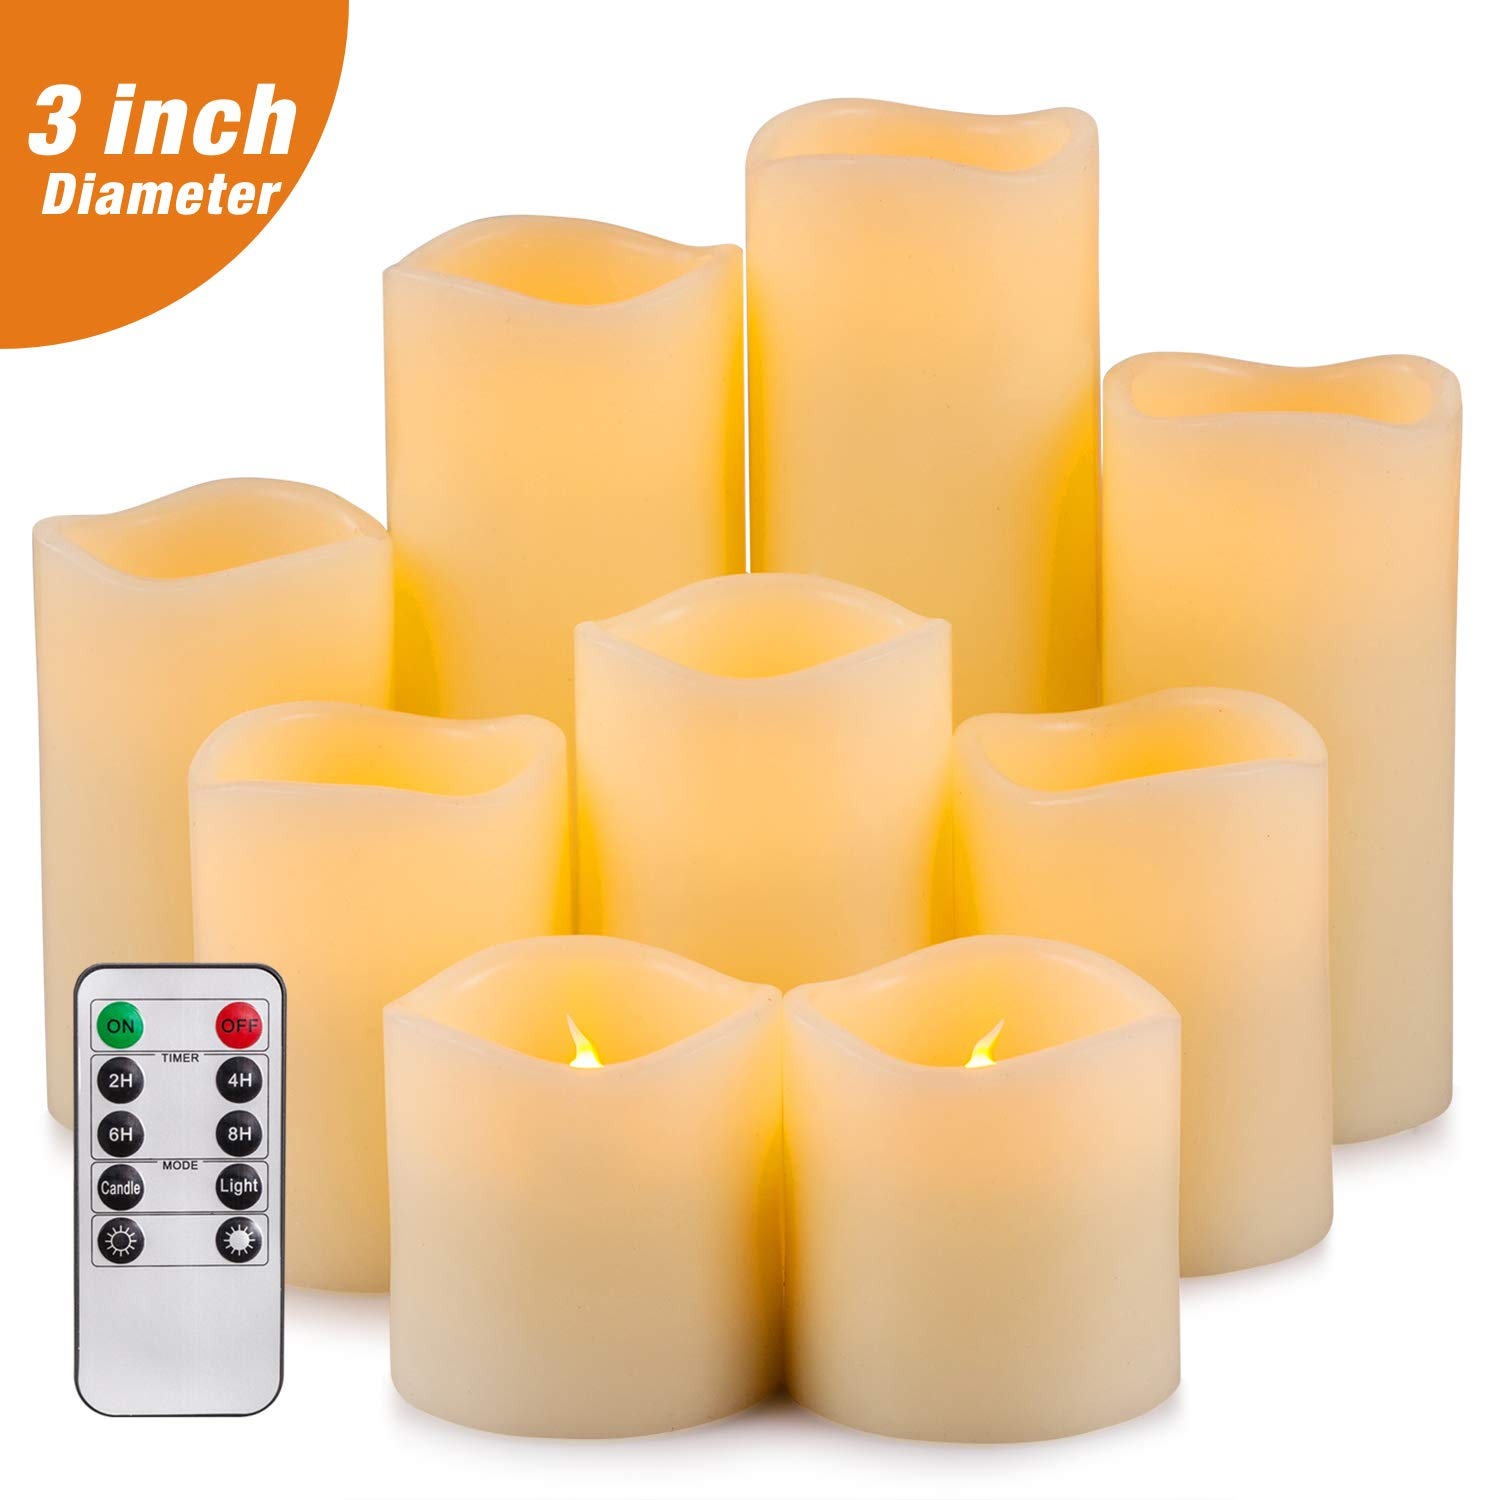 "Yutime Flameless Candle Set of 9 (D 3"" x H 3"" 4"" 5"" 6"" 7"" 8"") Battery Operated LED Pillar Real Wax Flickering Candles with Remote Control Timer"